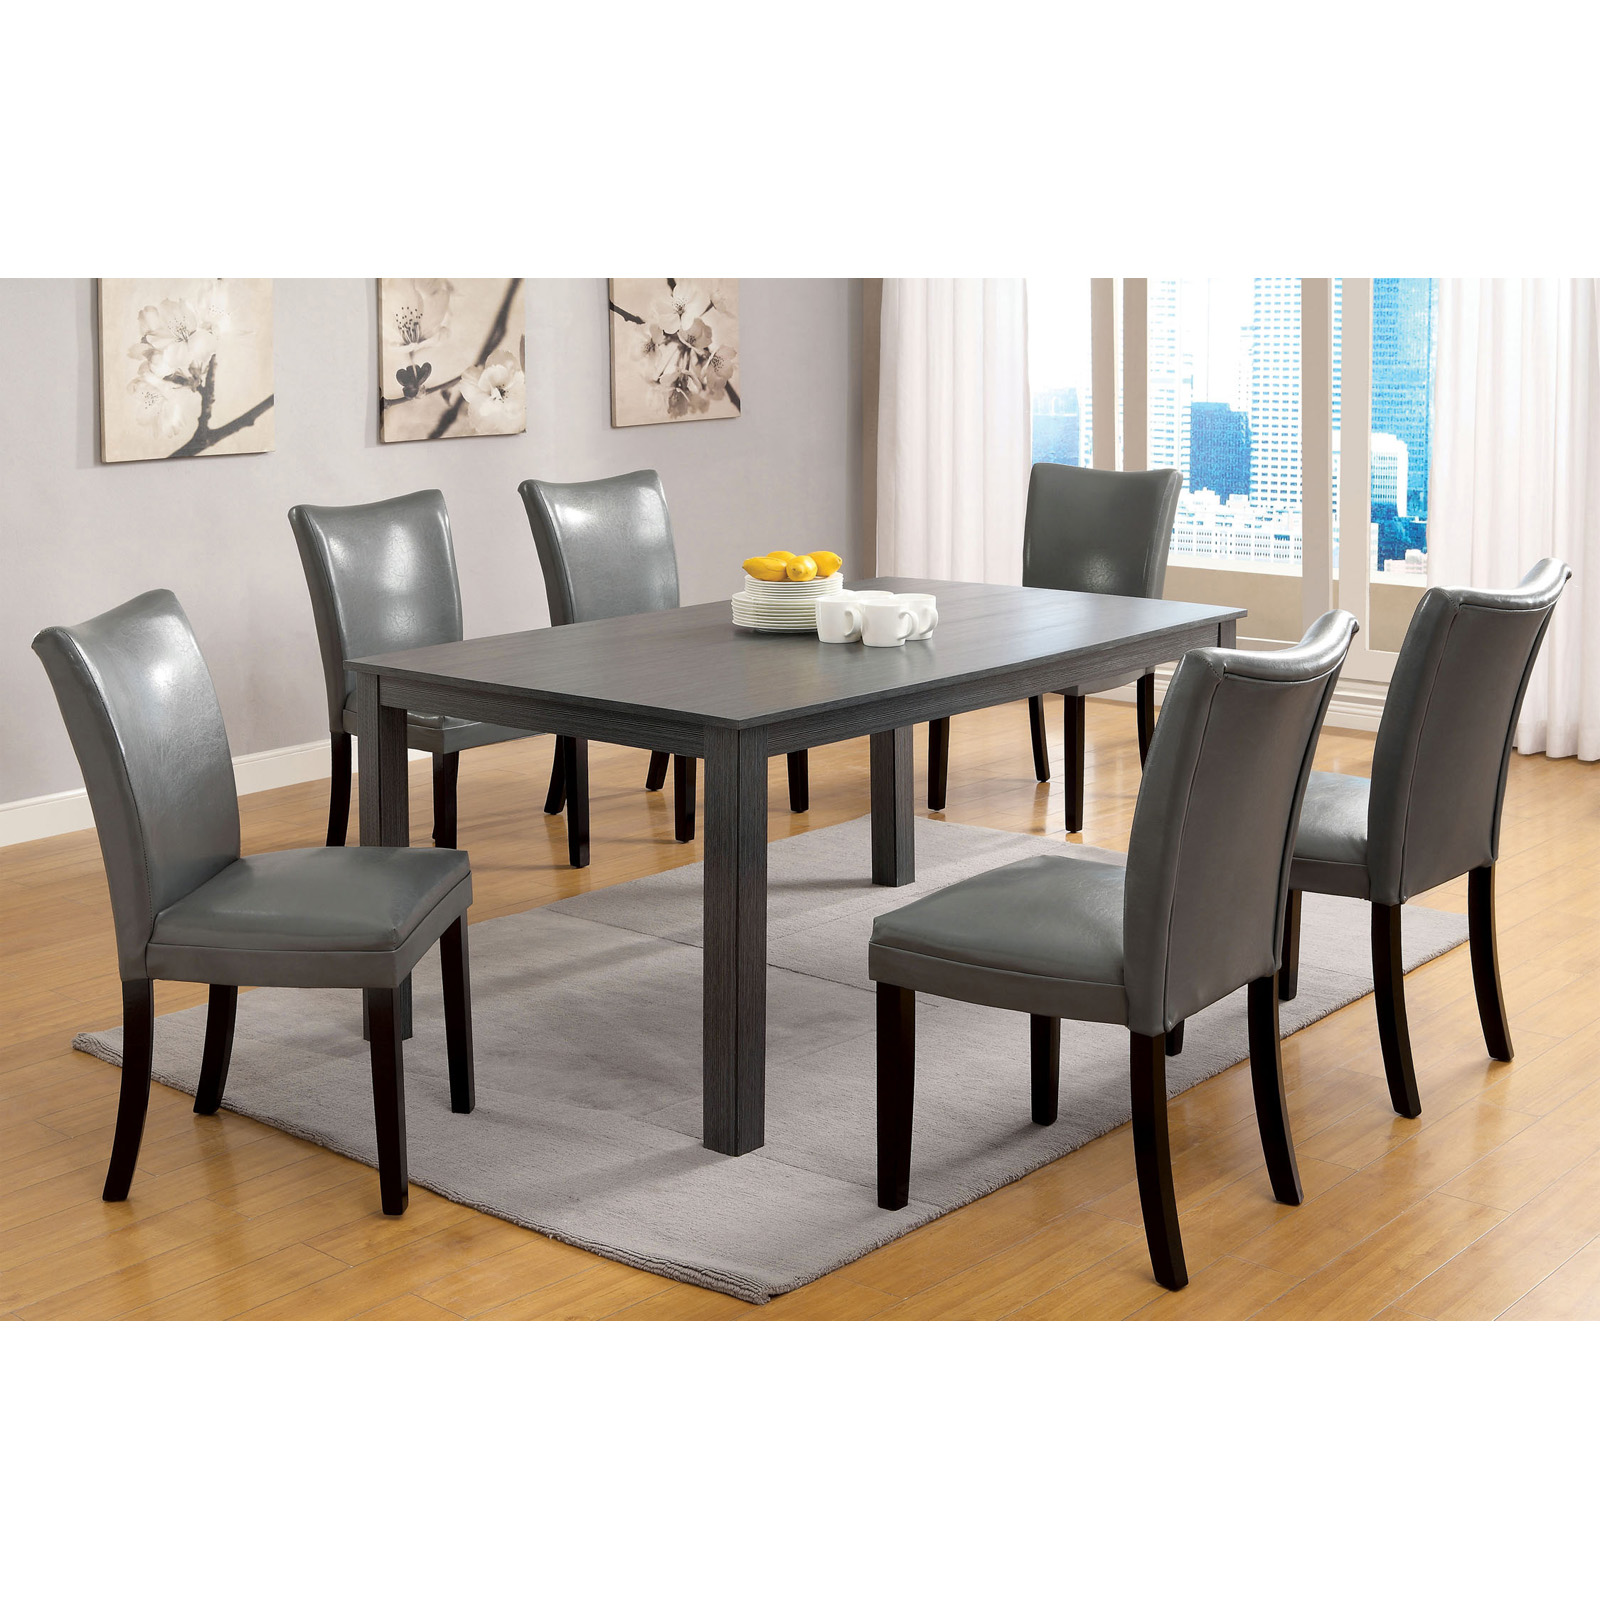 Furniture Of America Brenton 7 Piece Dining Table Set